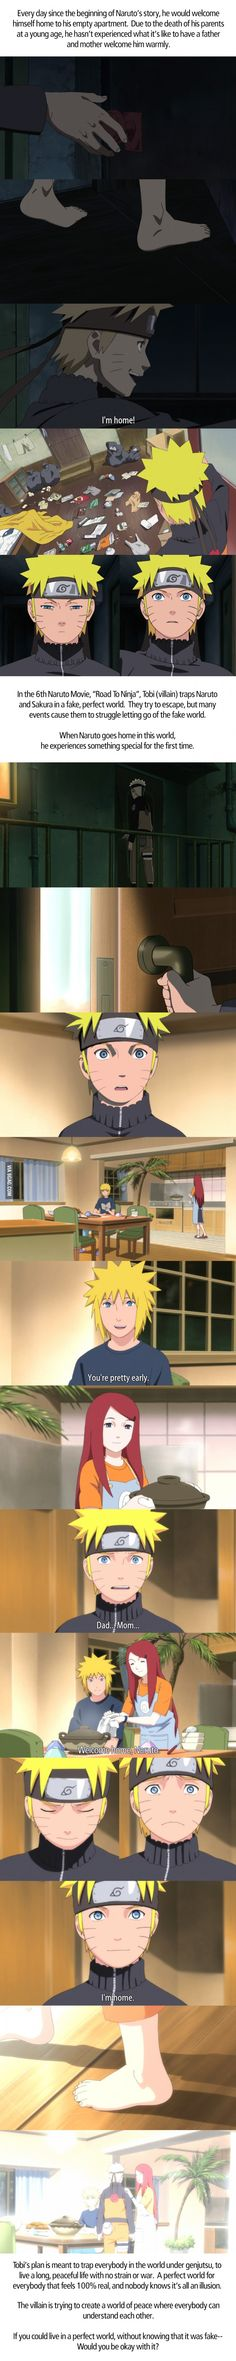 Road to ninja was one of my favorite movies from naruto and it pained my heart to see how much he had to endure